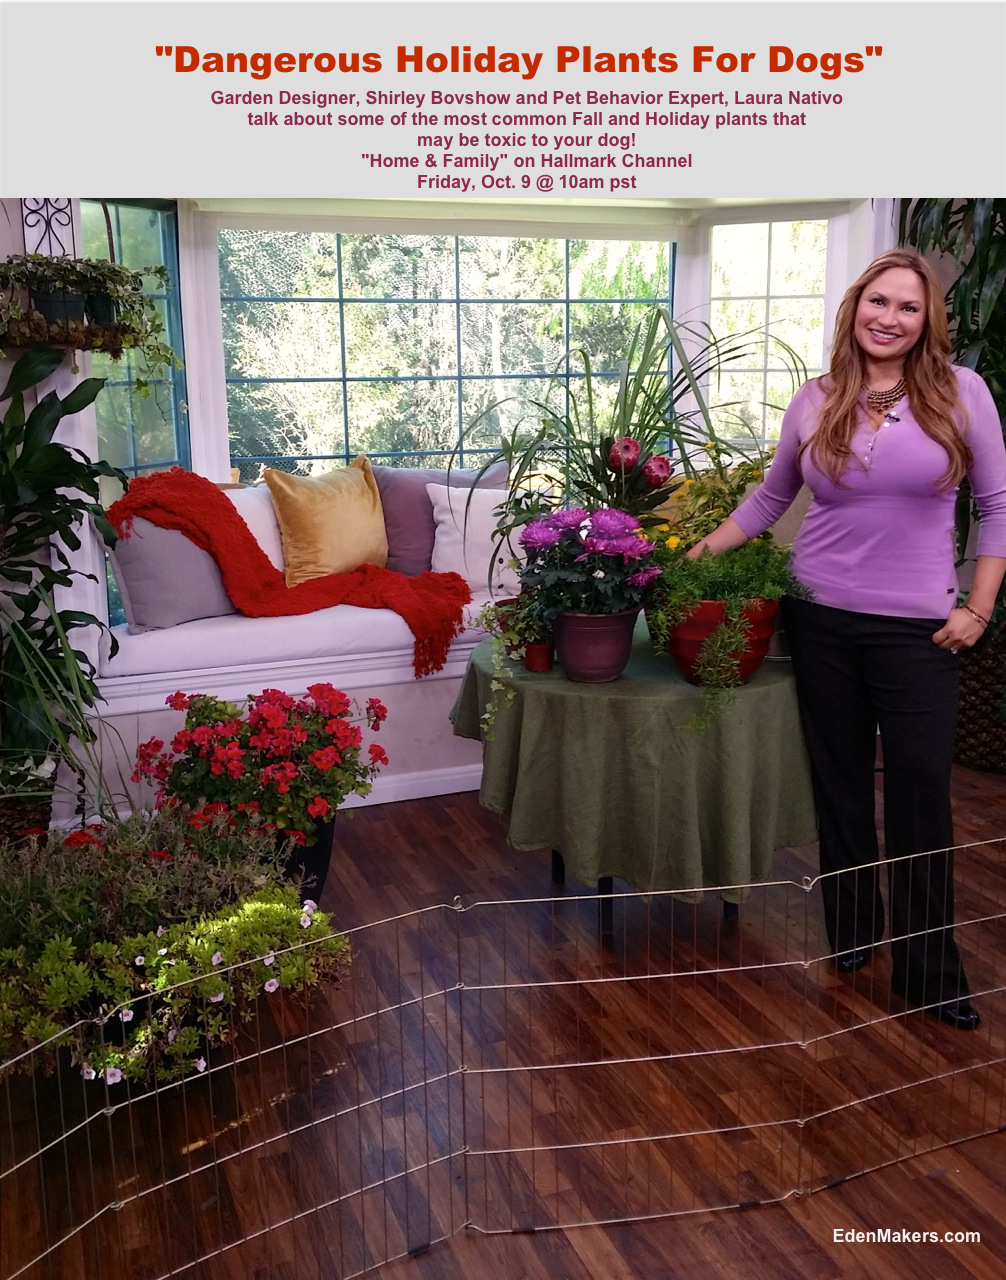 Common Poisonous Plant Brought Indoors For Winter: Pet Alert   Eden Makers  Blog By Shirley Bovshow